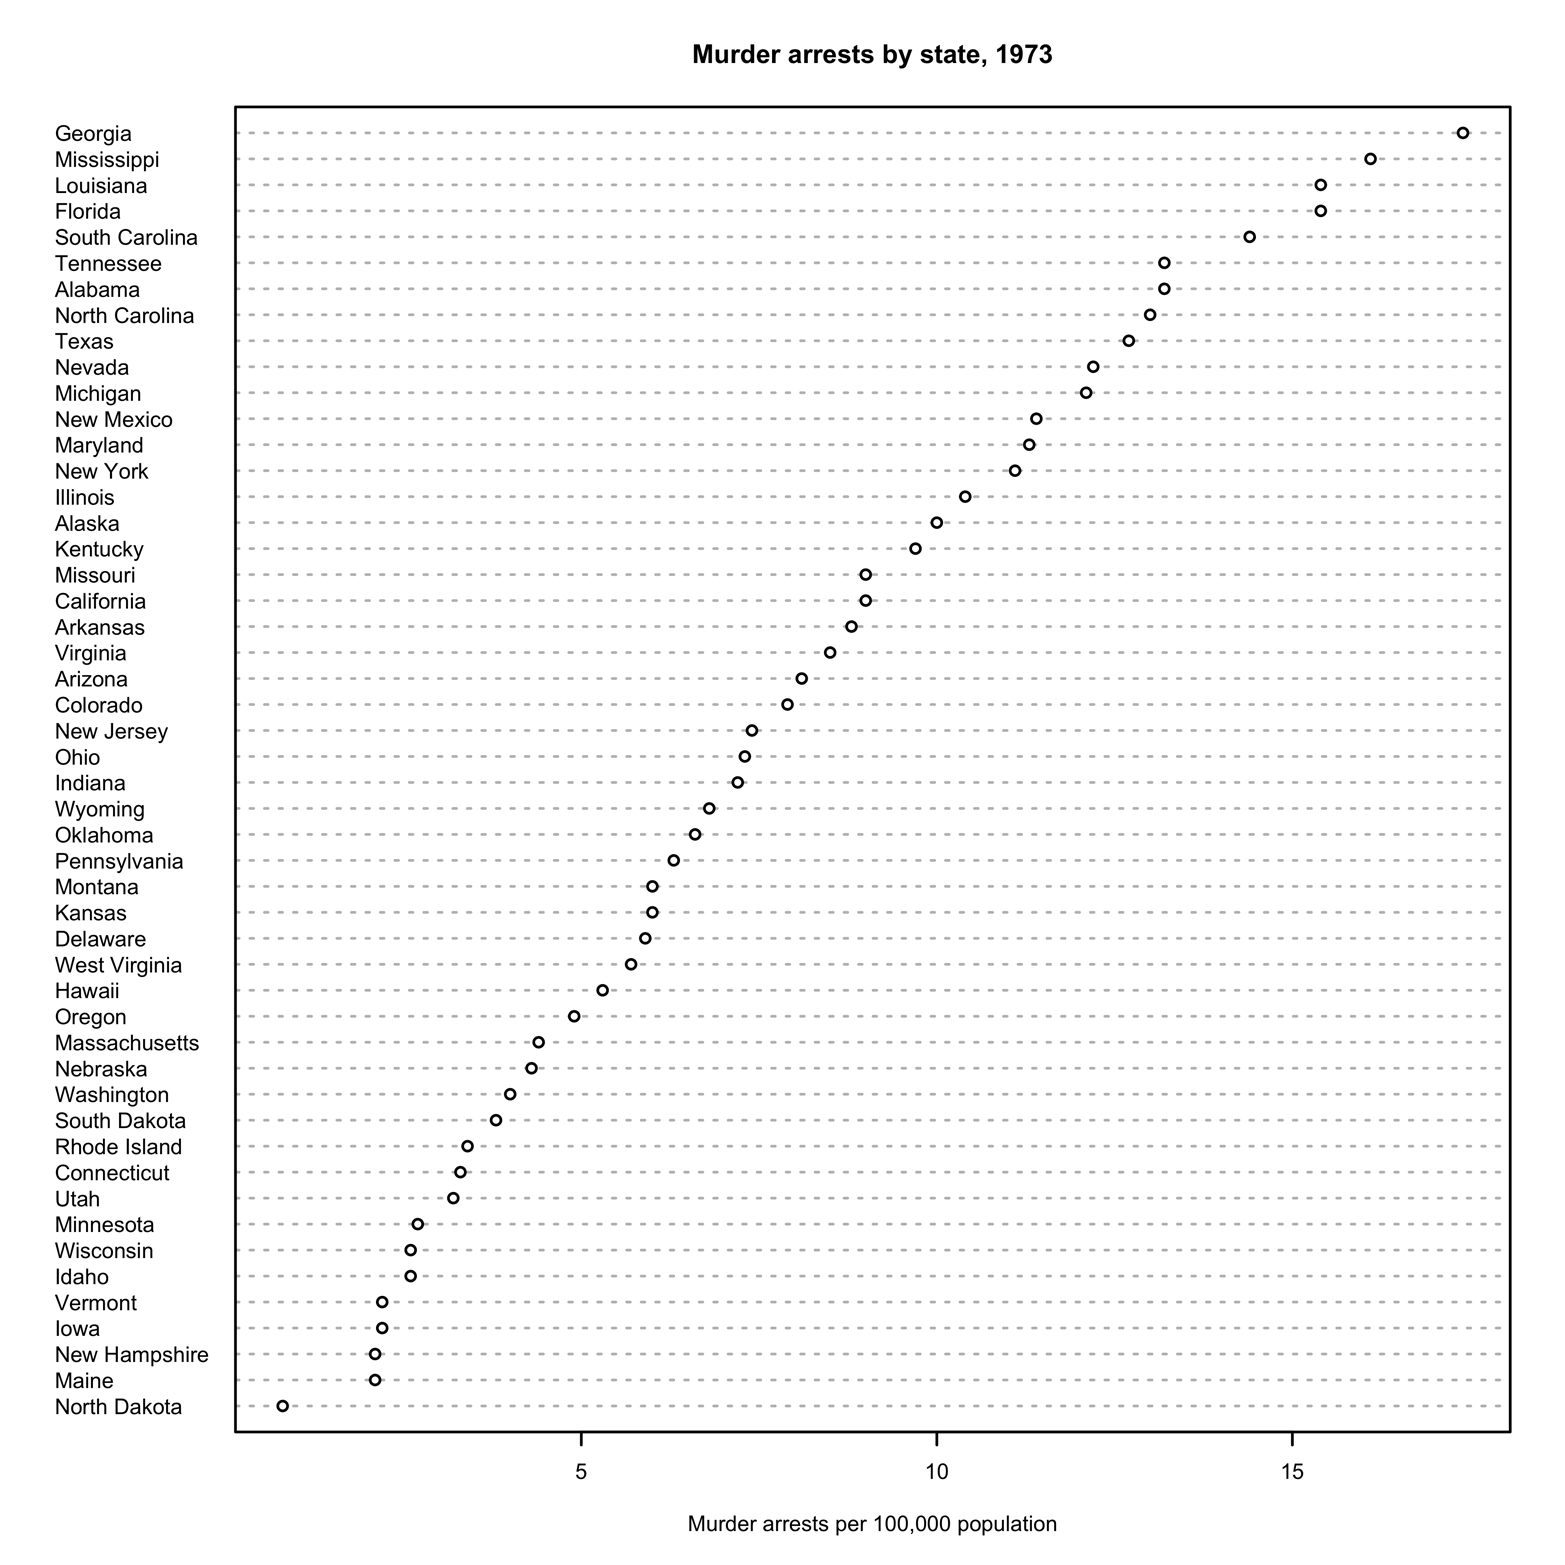 Dot chart of states sorted by murder rate.